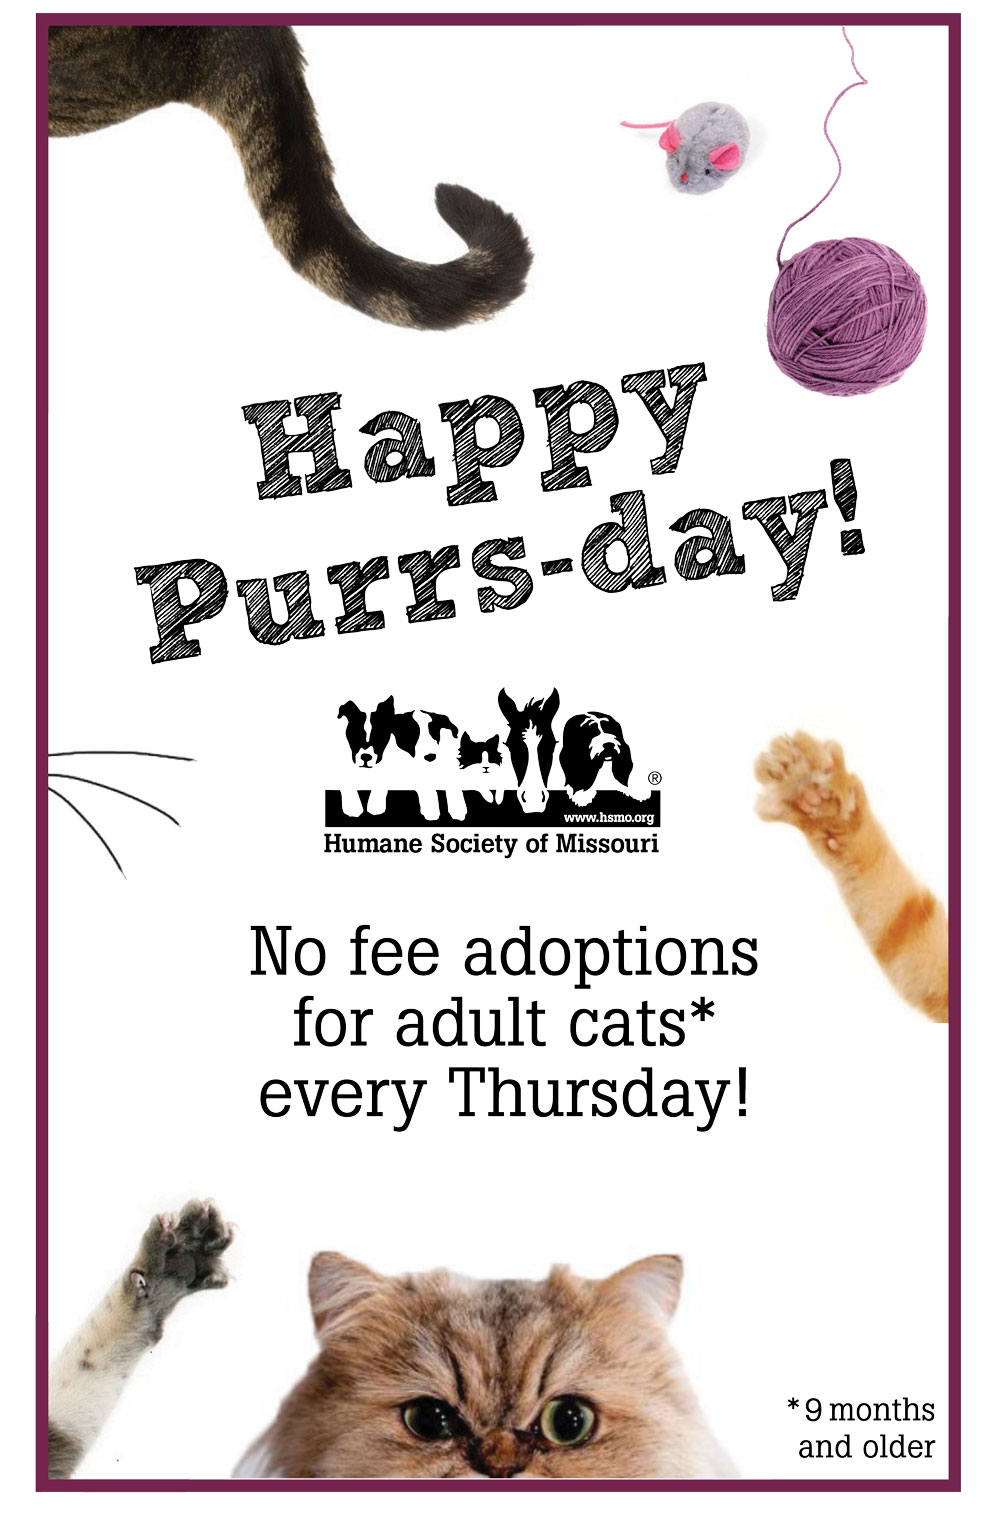 Every Thursday is PURRSday!